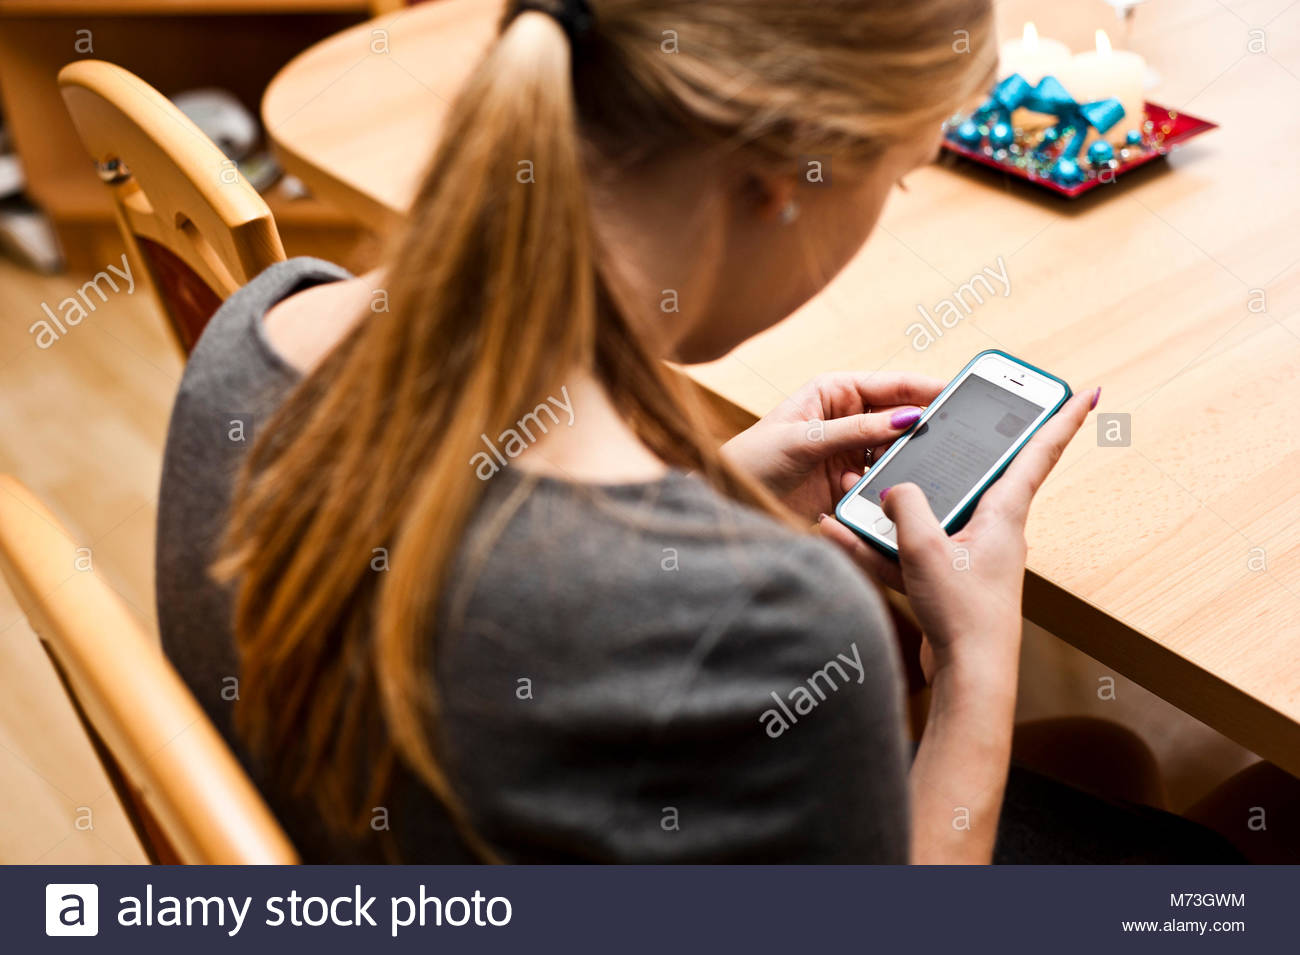 blond young woman messaging on her cellphone - Stock Image